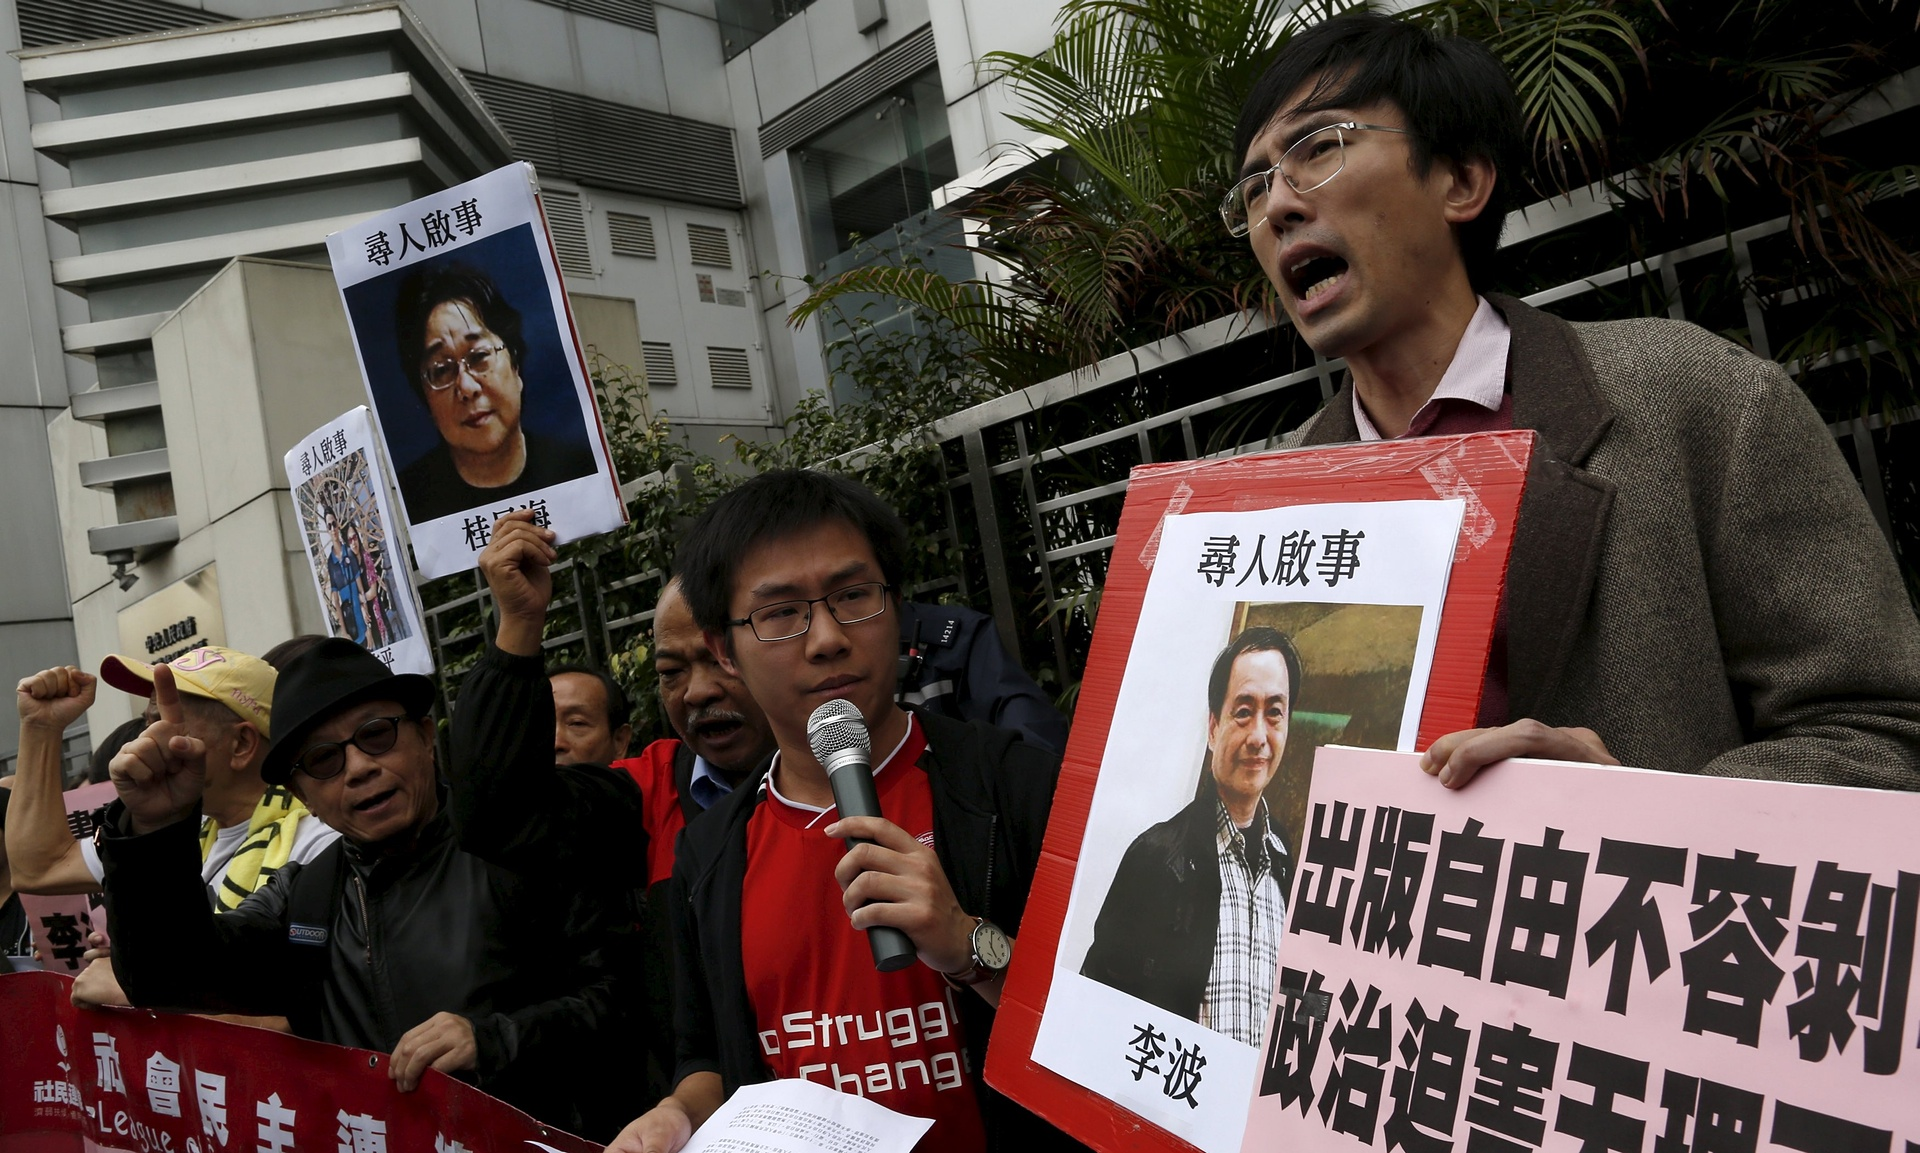 Demonstrators outside the Chinese liaison office in Hong Kong hold pictures of Lee Bo (right), Gui Minhai (left) and other Sage Communications employees who have gone missing. (Photo courtesy/Tyrone Siu/Reuters)